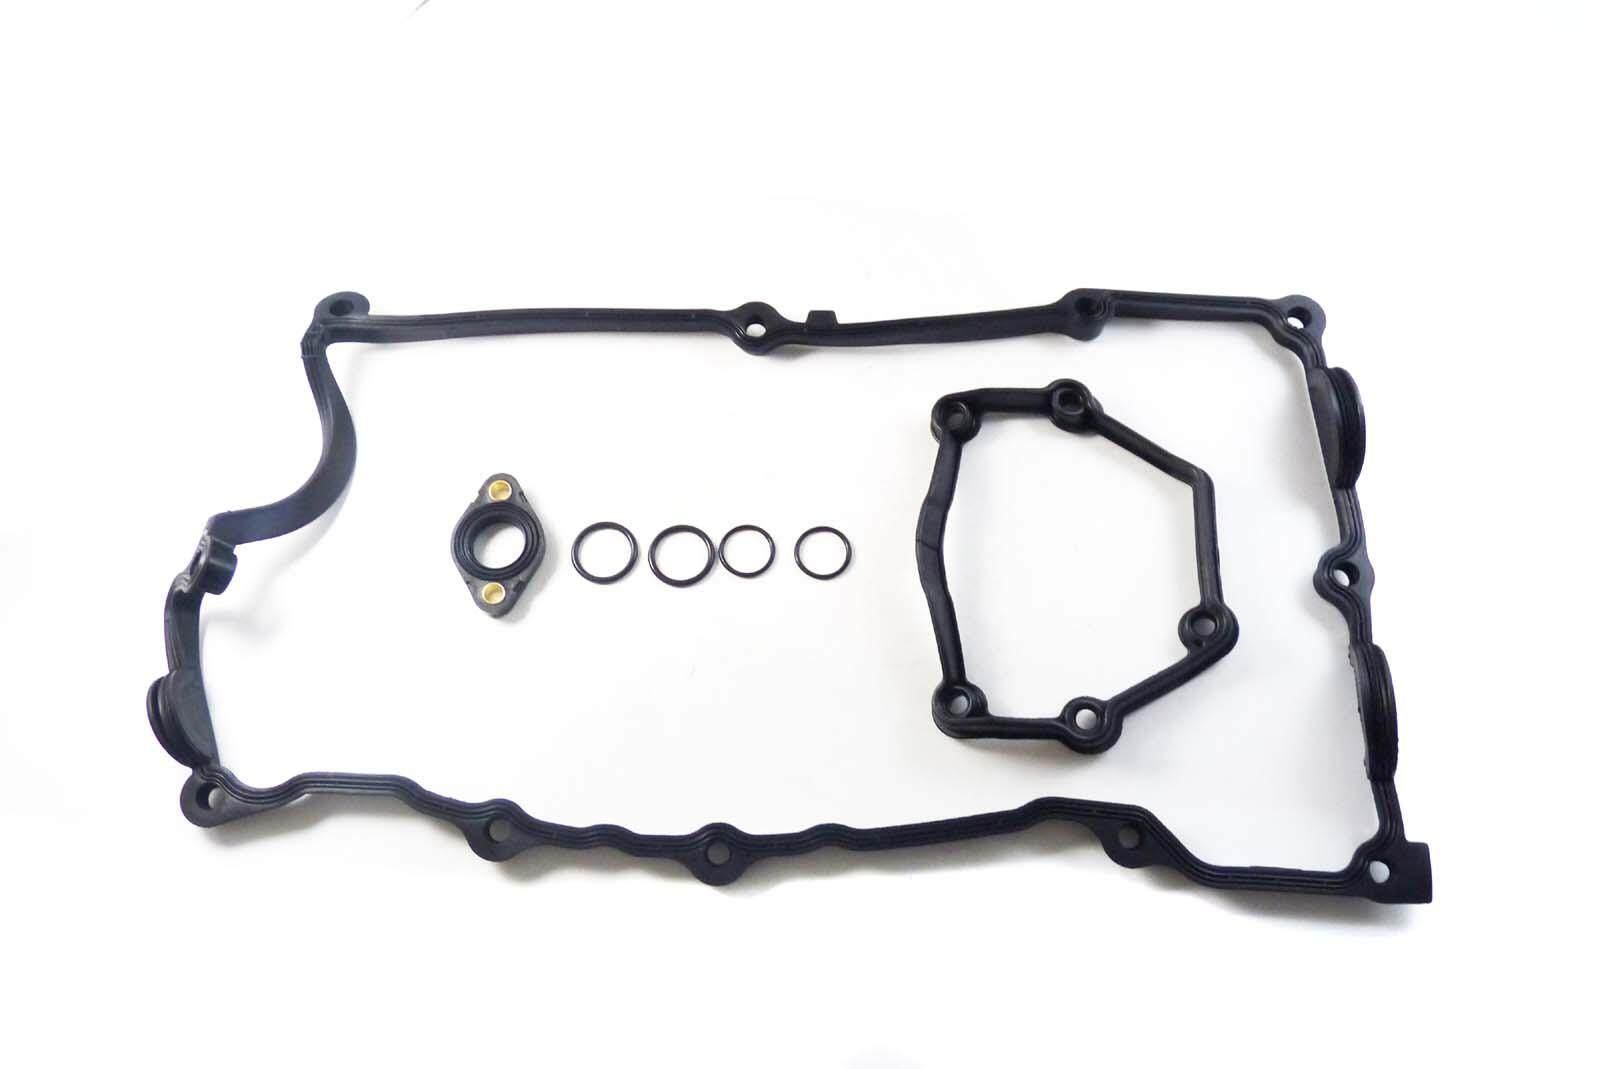 CYLINDER HEAD COVER GASKET W// Tube O-Rings Set for BMW E46 E90 X3 11120028033